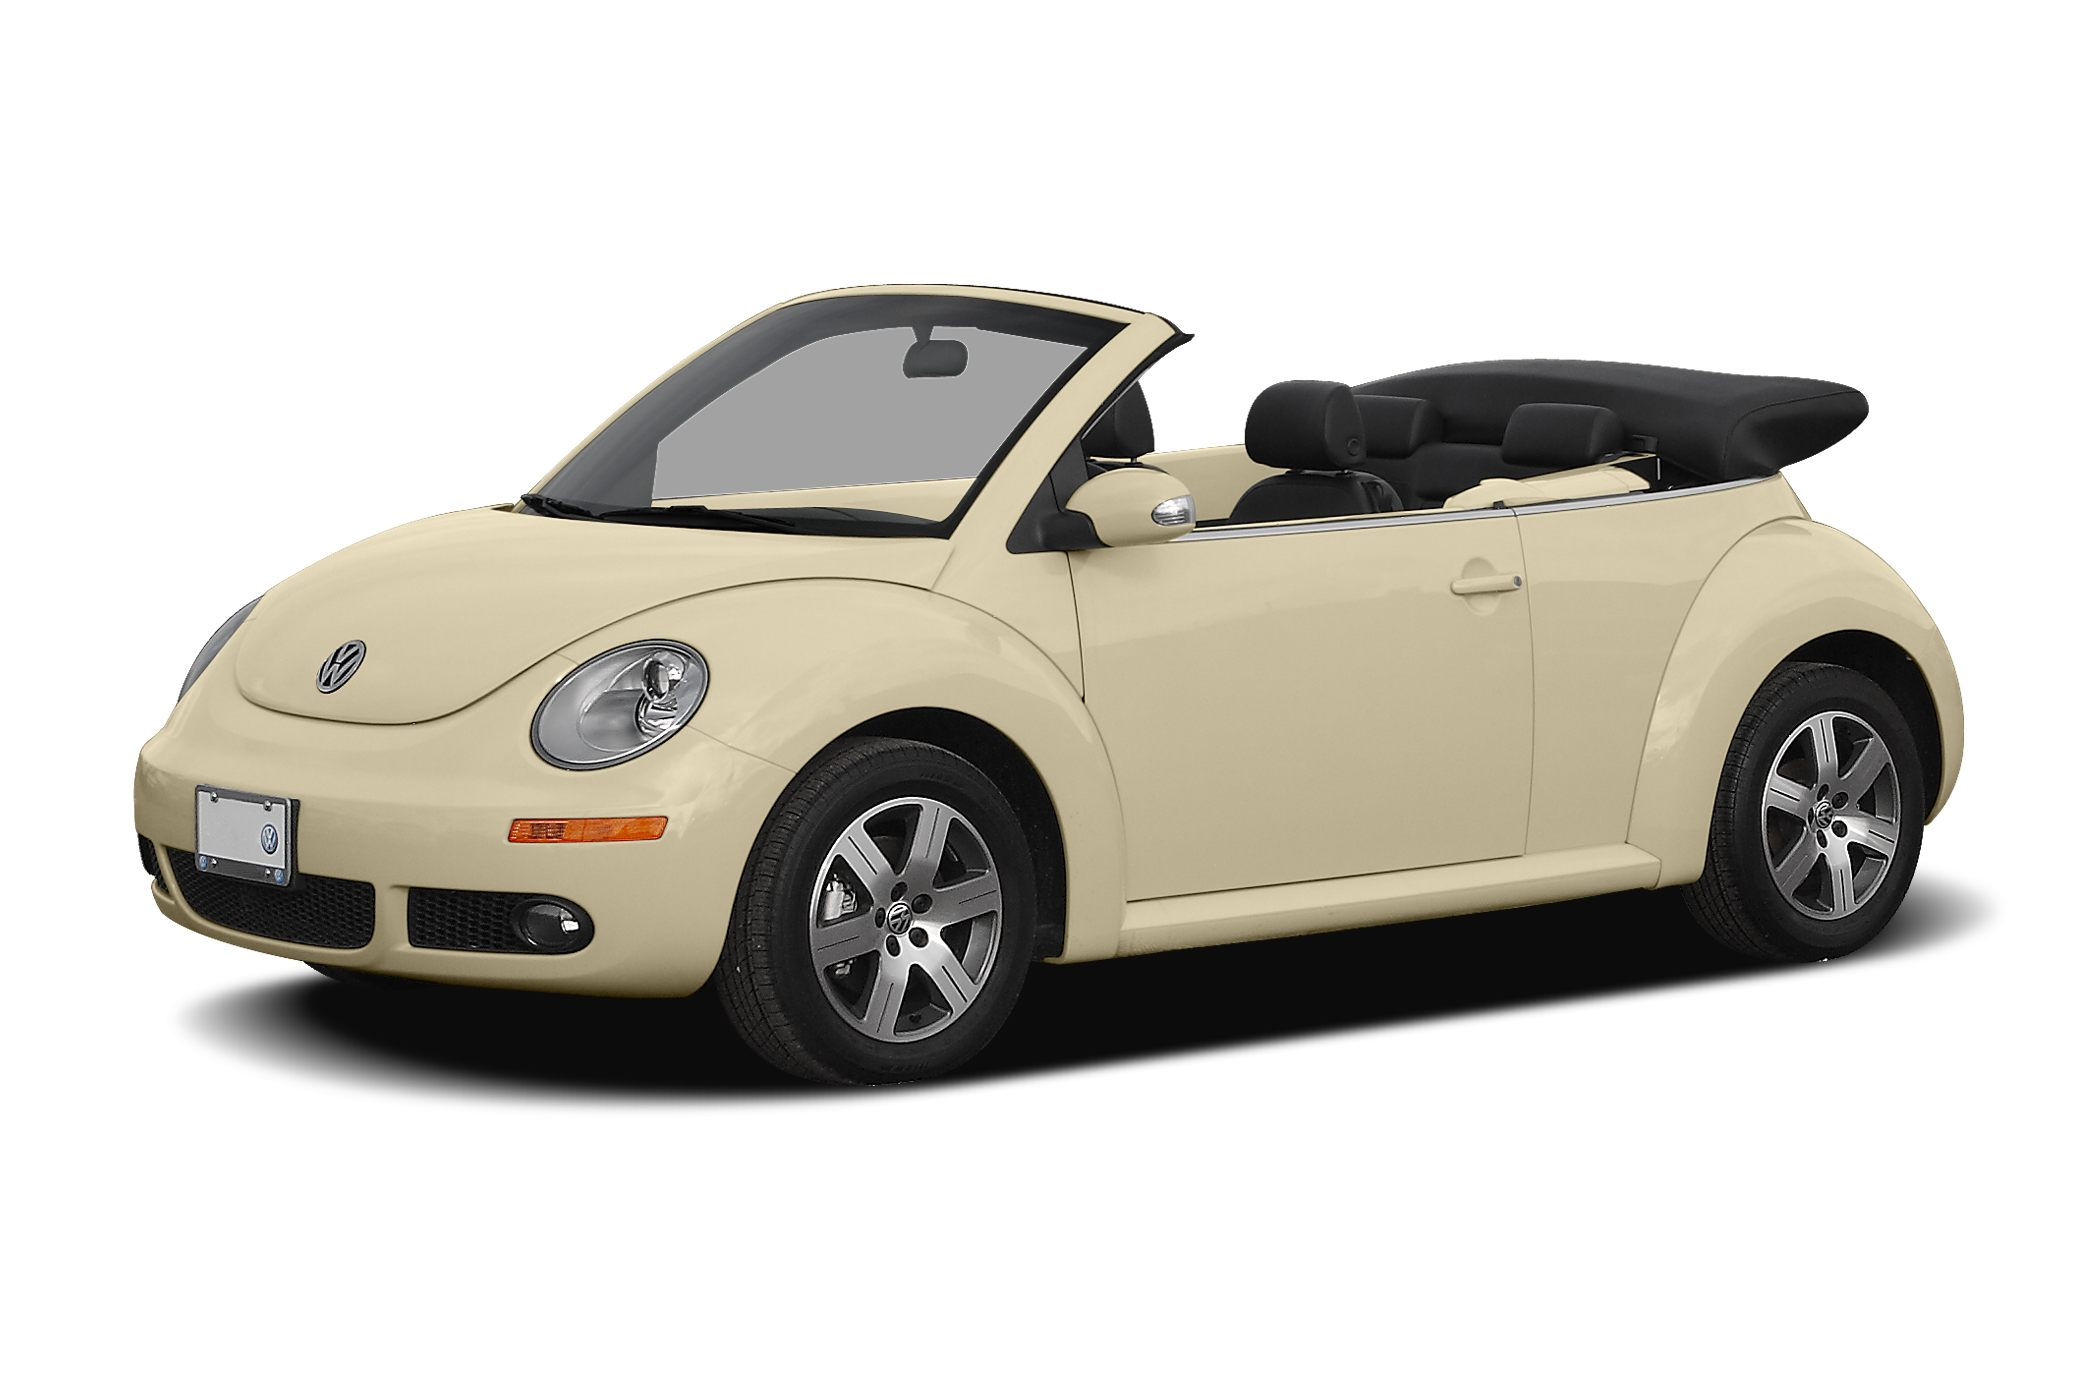 2008 Volkswagen New Beetle S CLEAN CARFAX Beetle S 2D Convertible 6-Speed Automatic with Tiptro